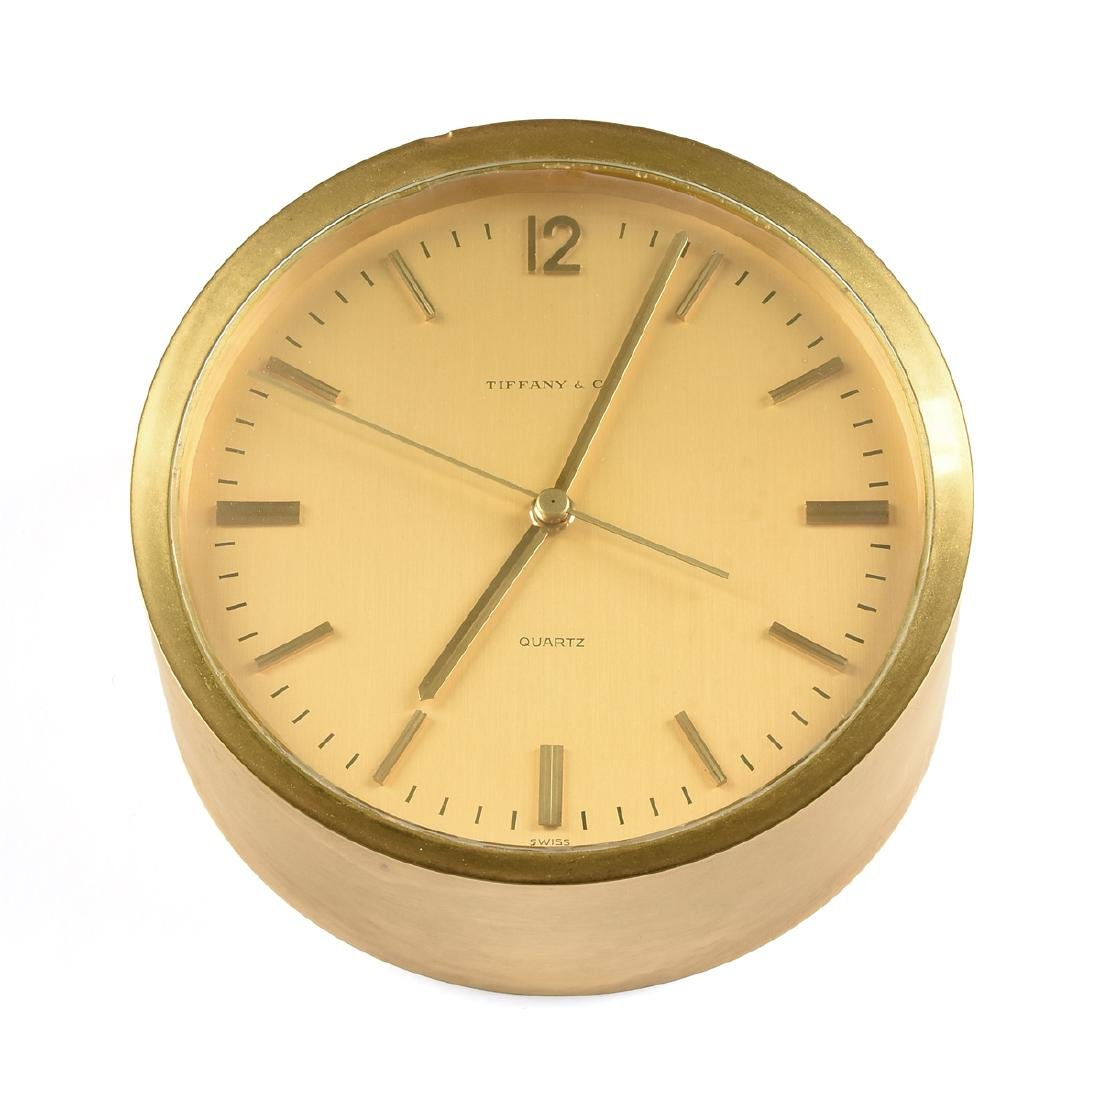 A TIFFANY & CO. SWISS MADE BRASS AND GOLD TONE QUARTZ